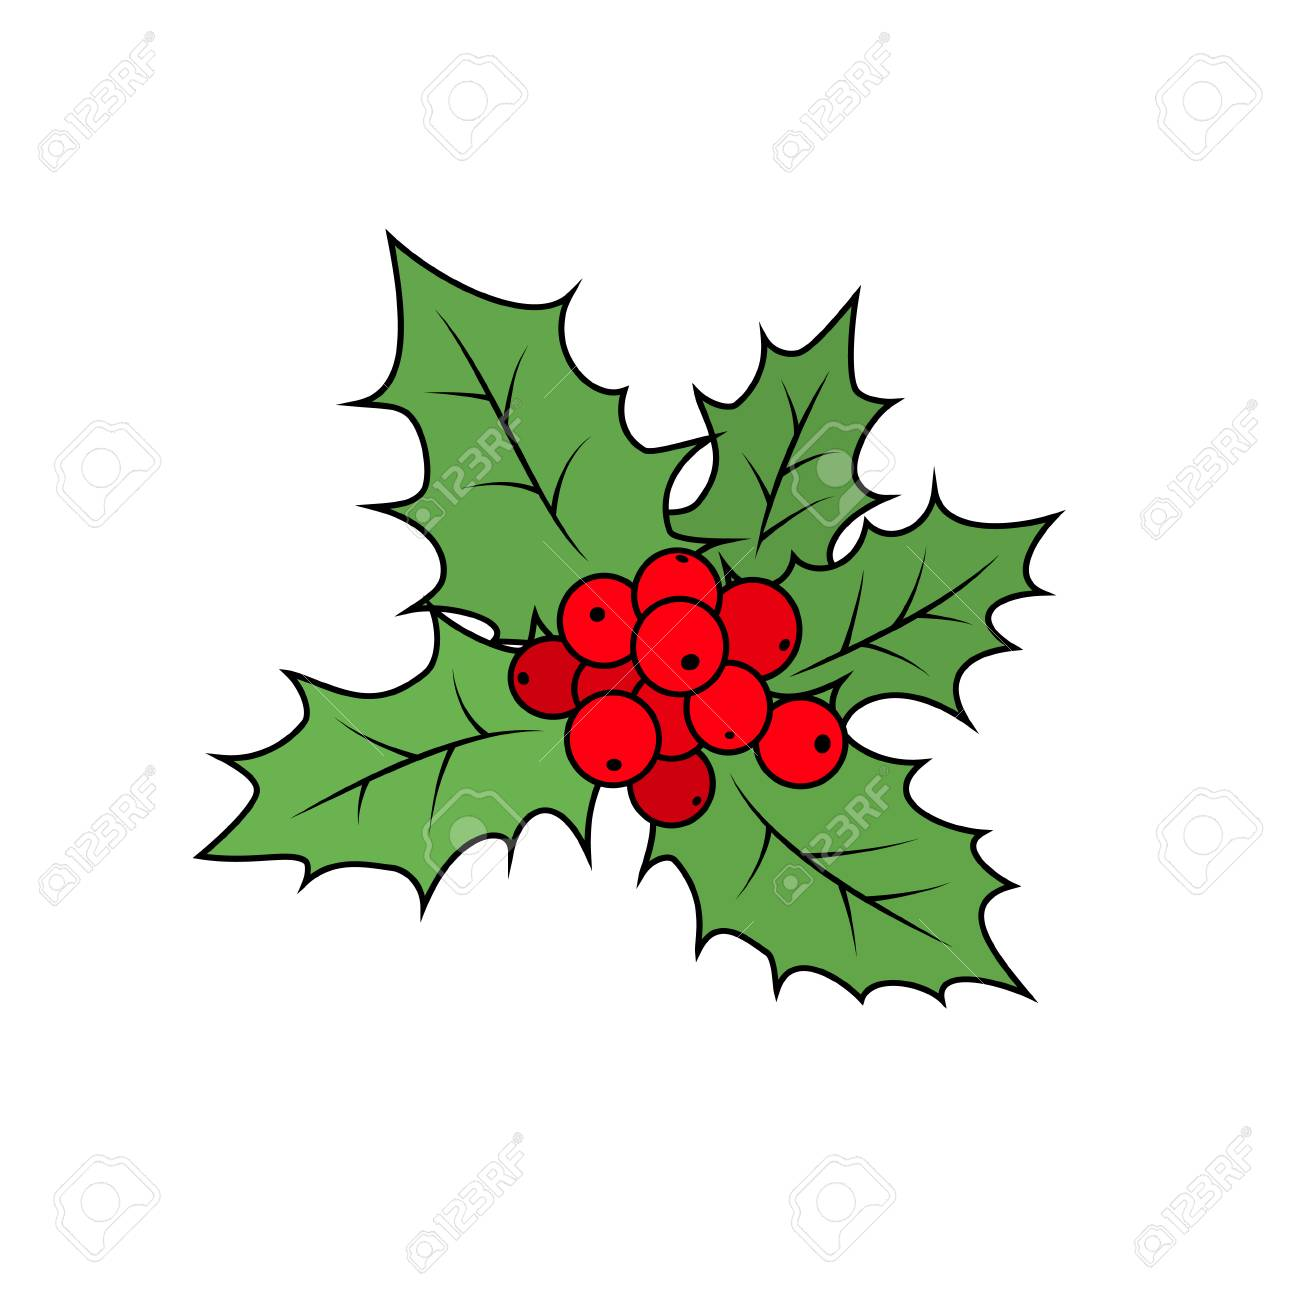 christmas holly berry isolated on white background christmas decorations merry christmas and happy new